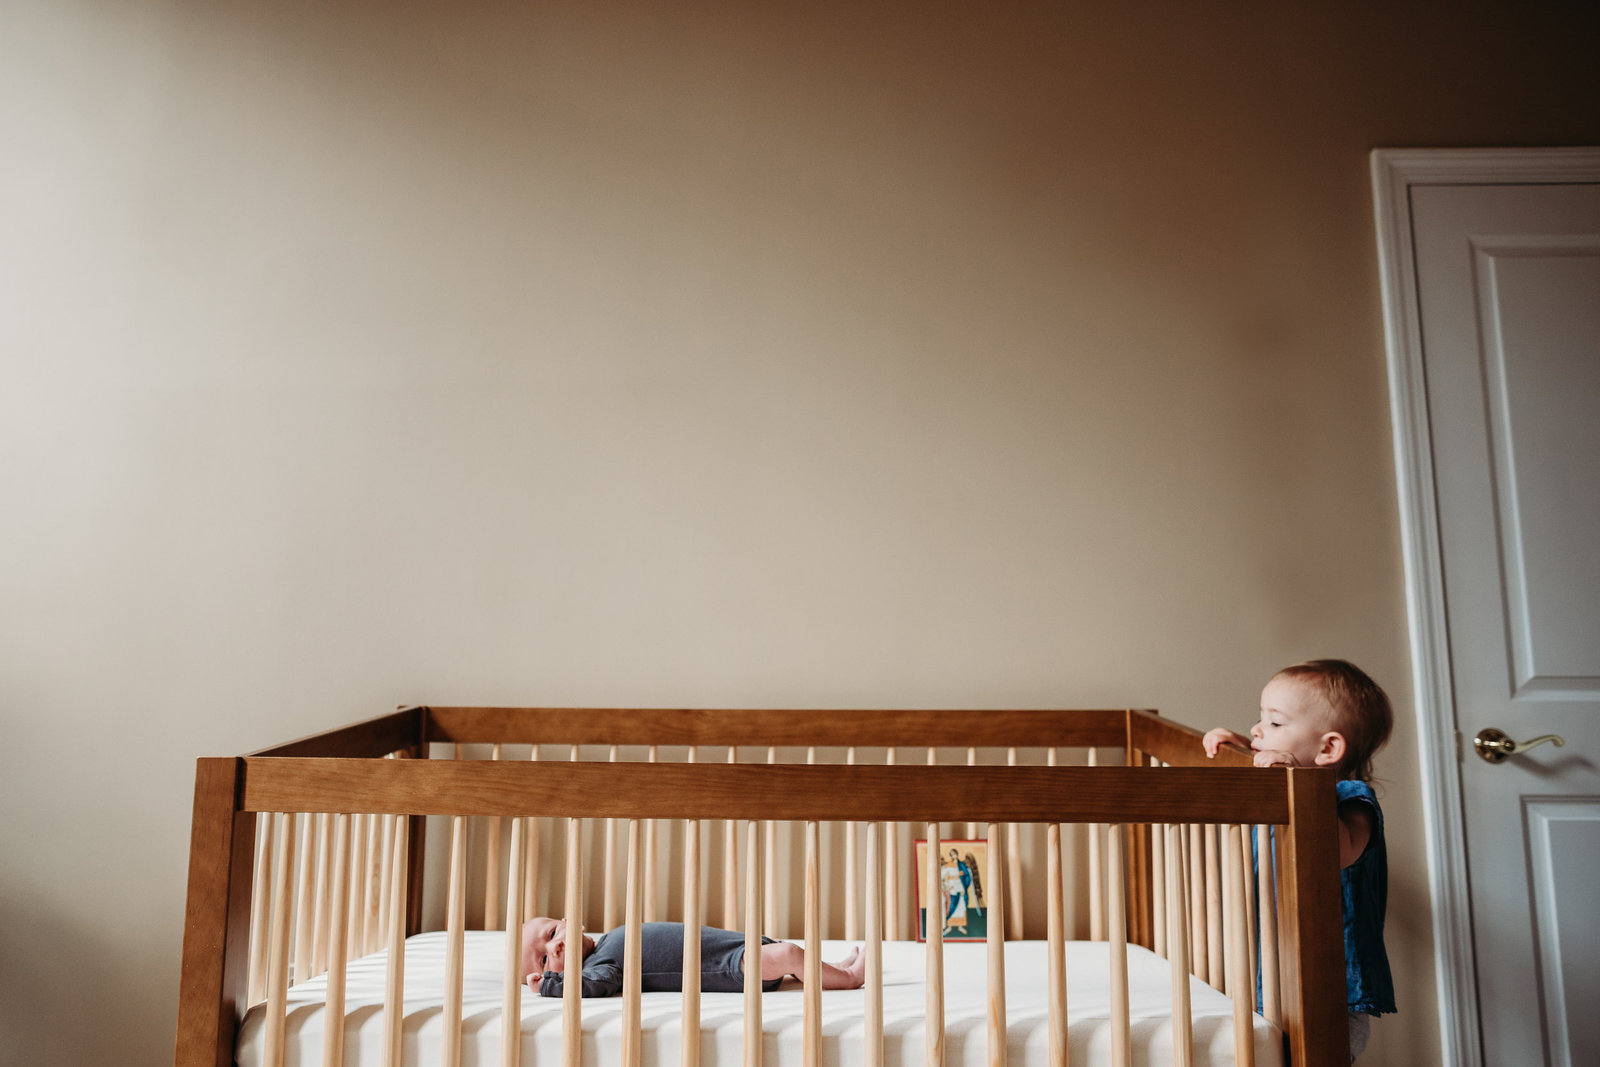 toddler peeks over top of crib to look at baby brother